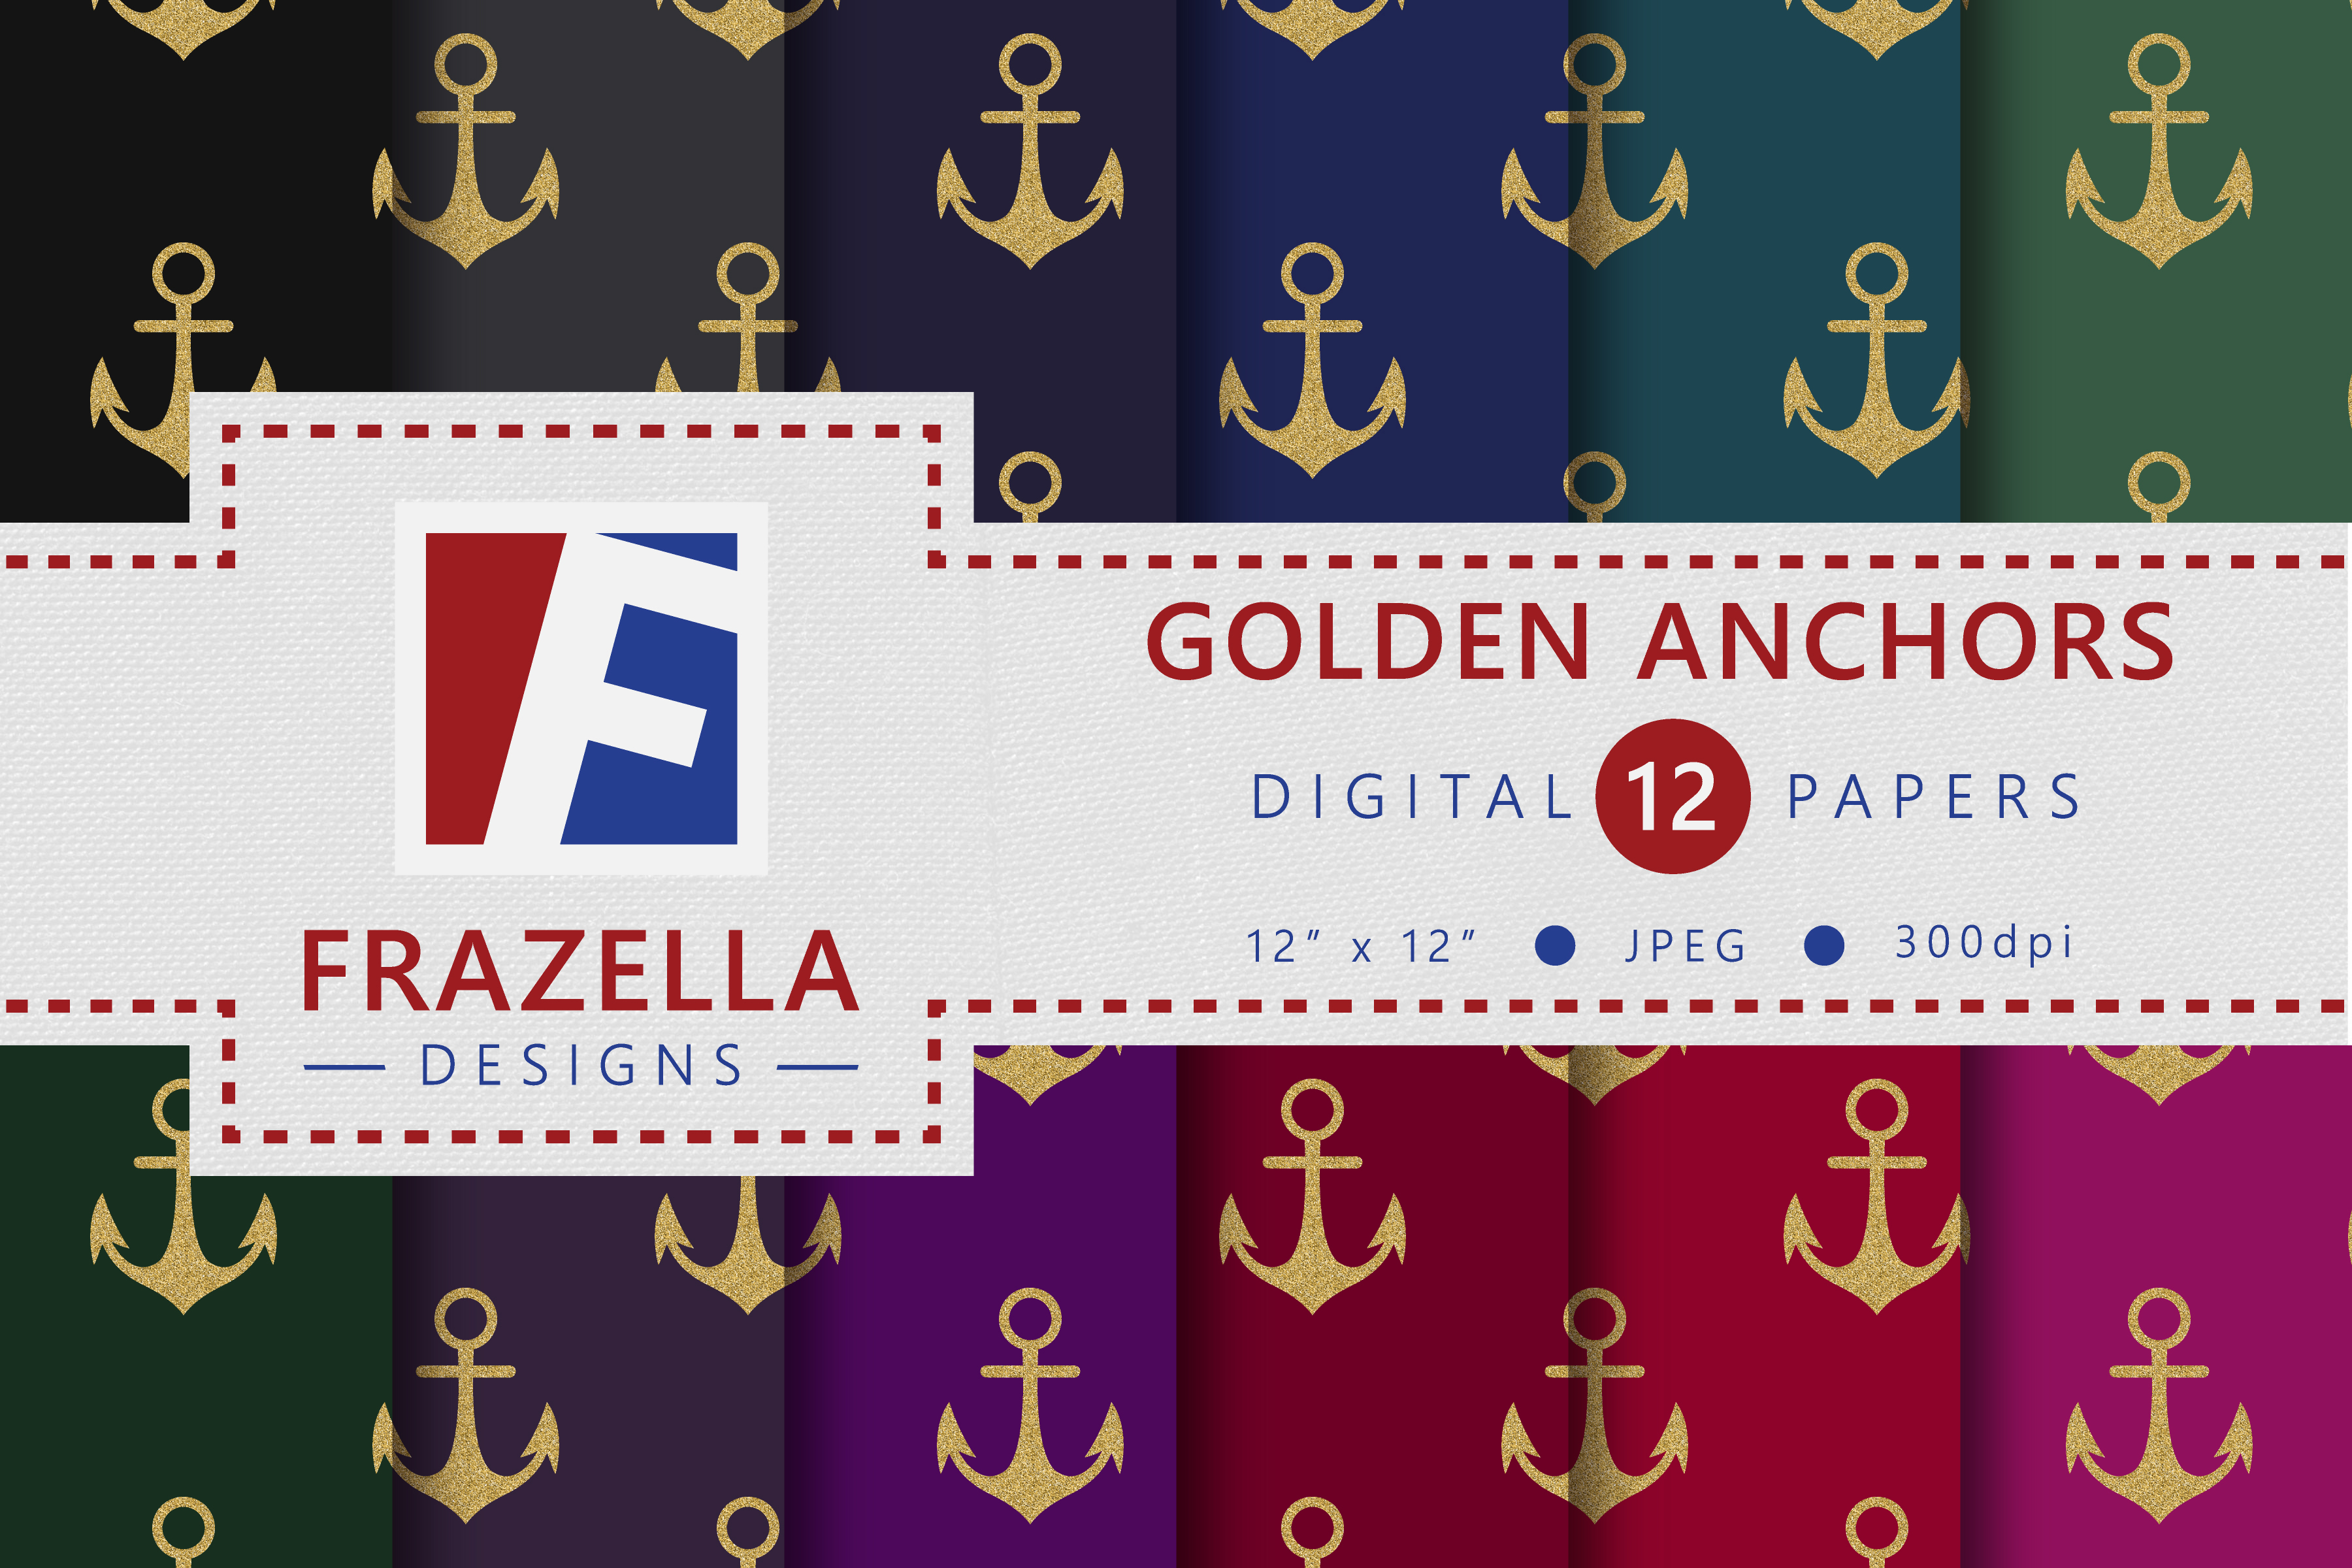 Download Free The Golden Anchors Digital Paper Collection Graphic By Frazella for Cricut Explore, Silhouette and other cutting machines.